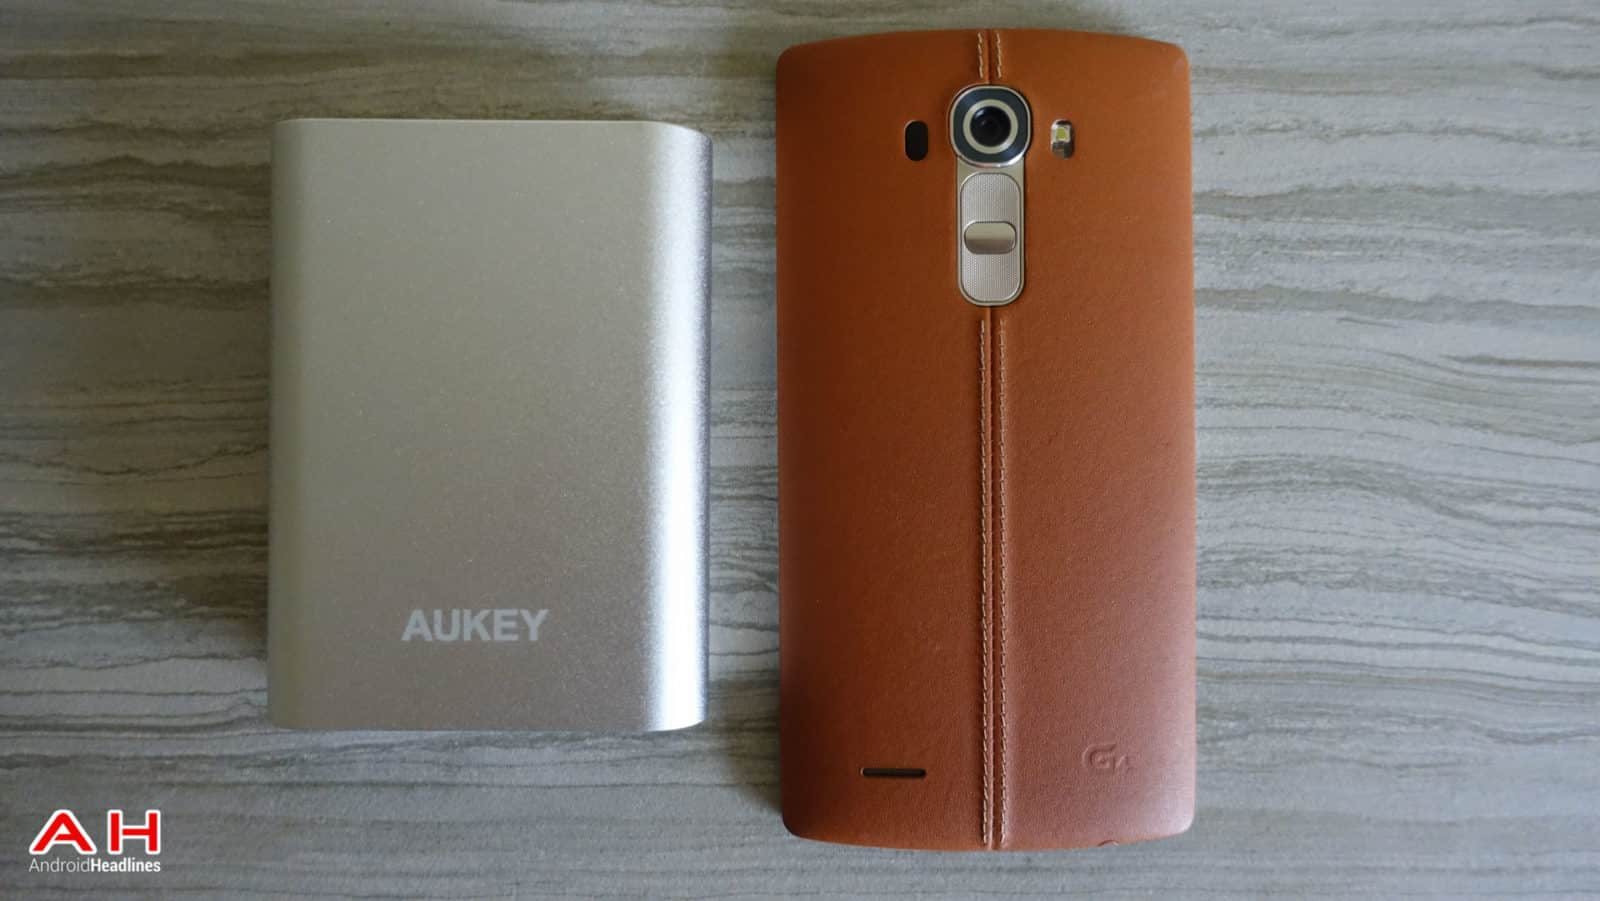 Aukey-Quick-Charge-AH-3